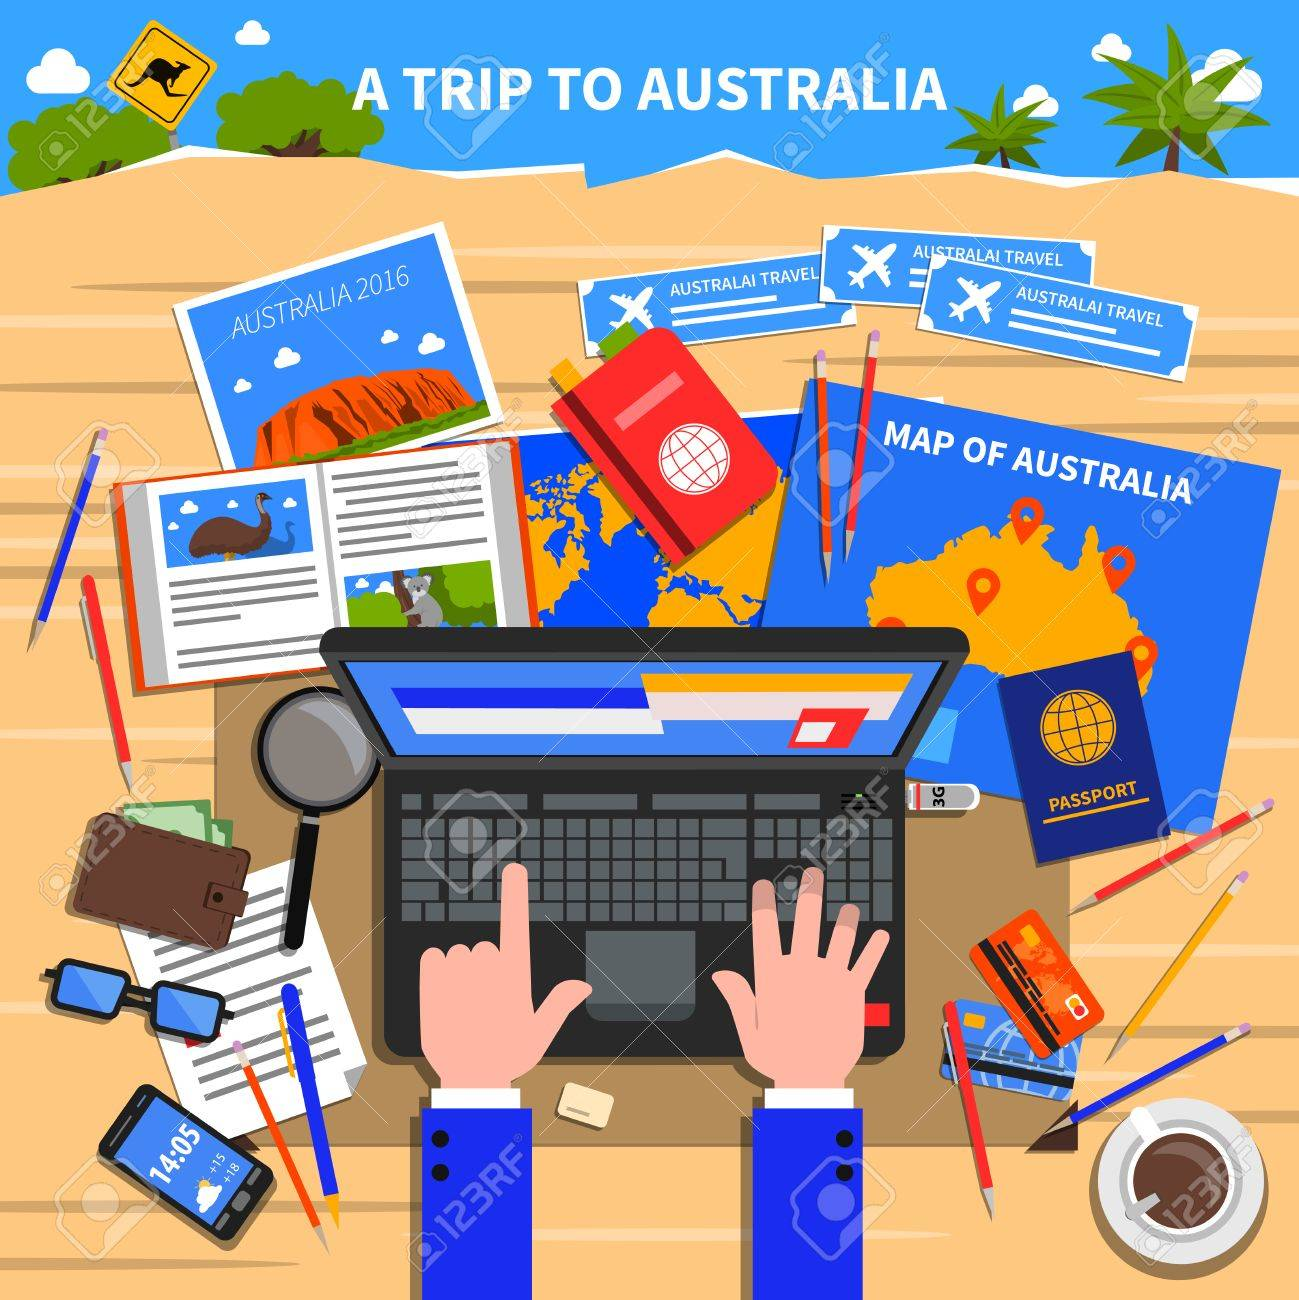 trip to australia concept with planning and calculating expenses